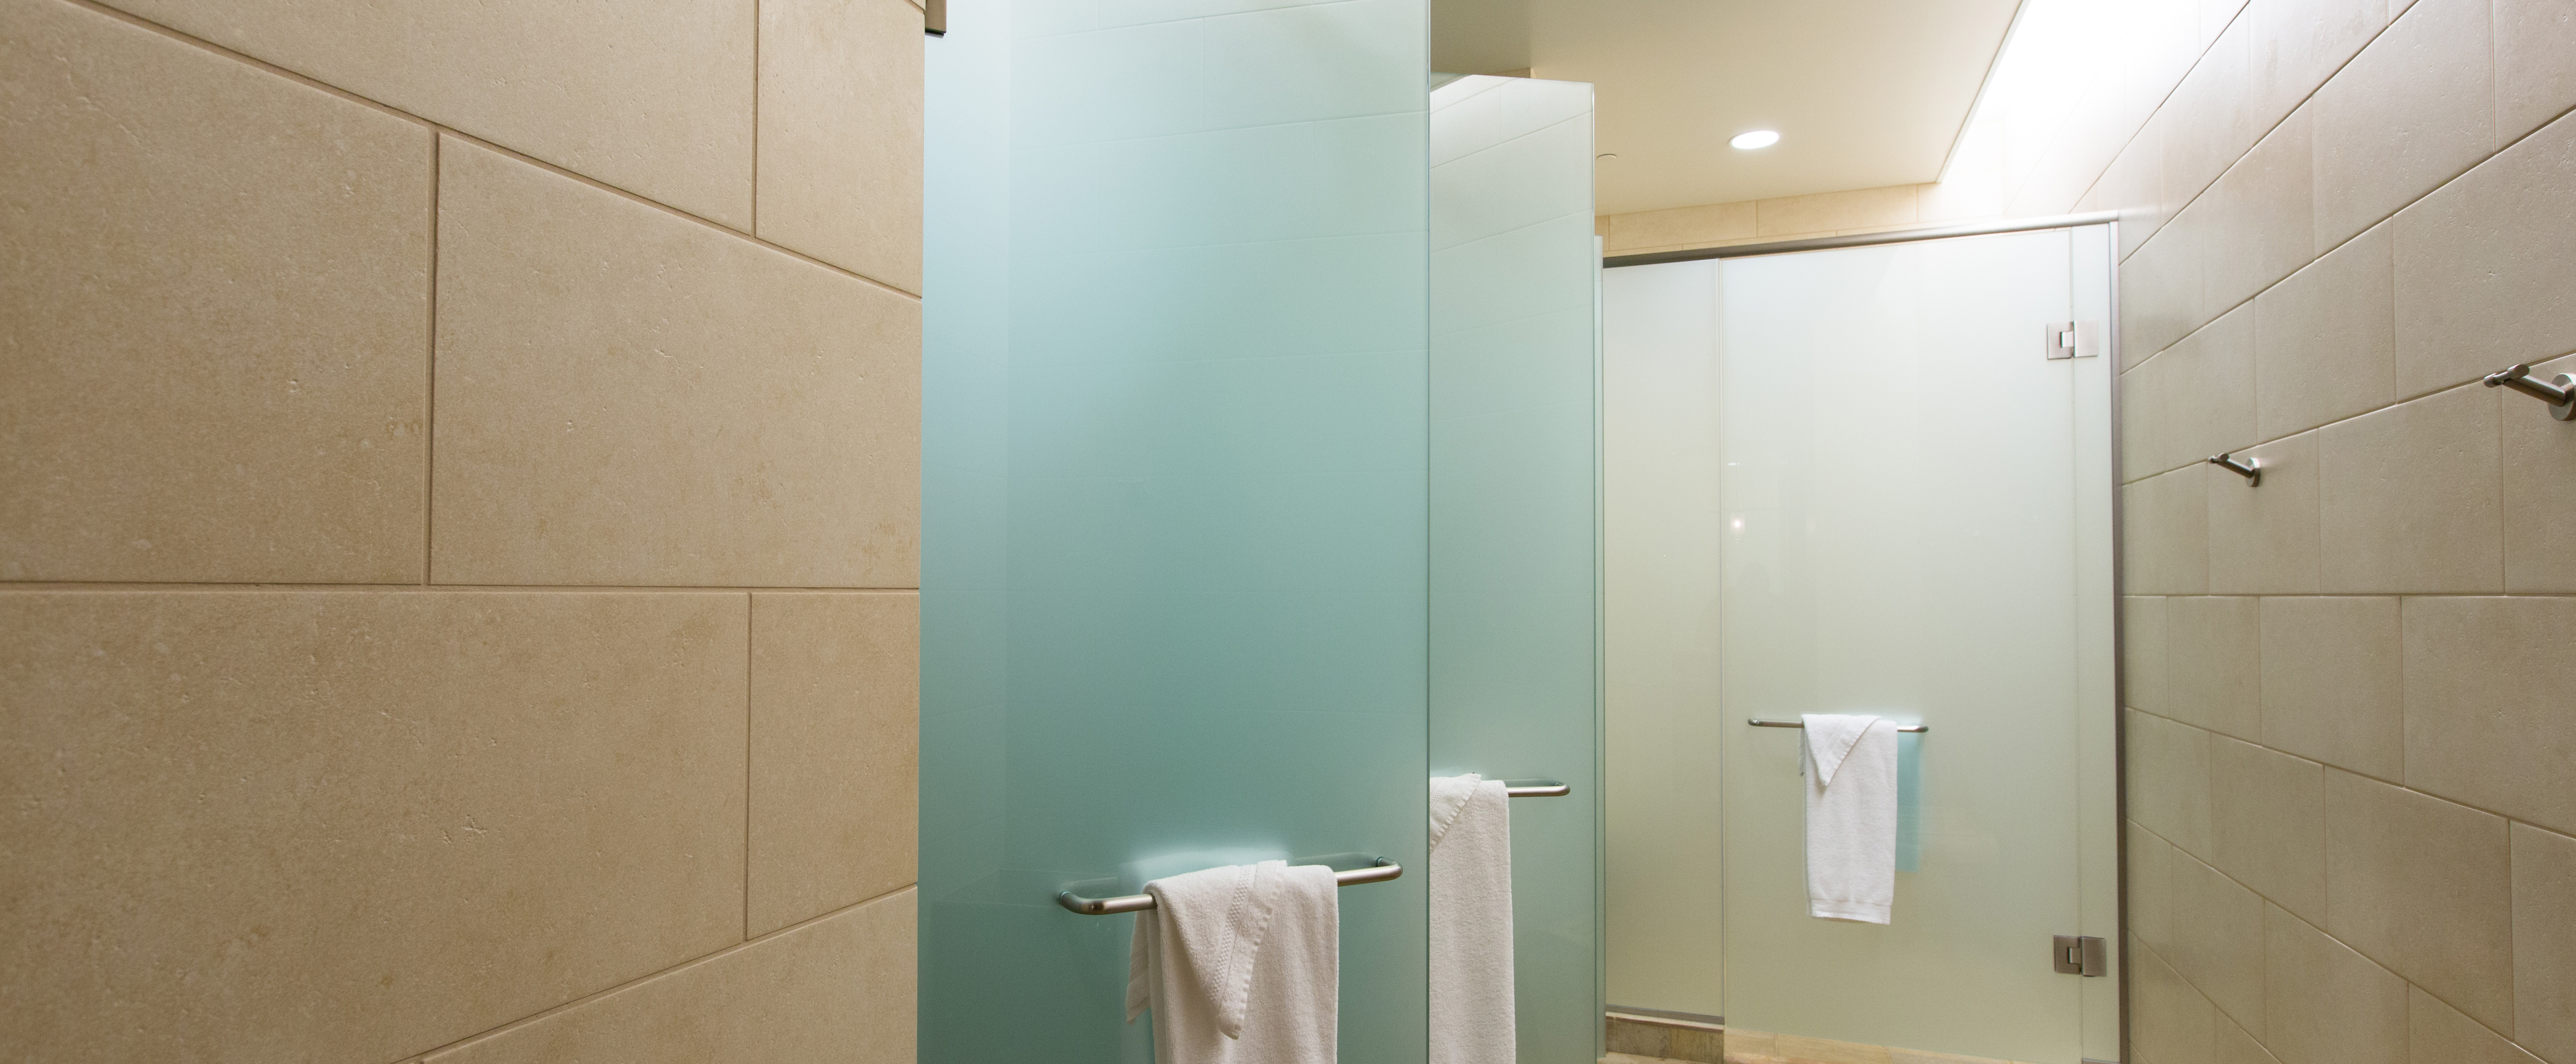 Several showers with frosted-glass doors in a tiled changing room